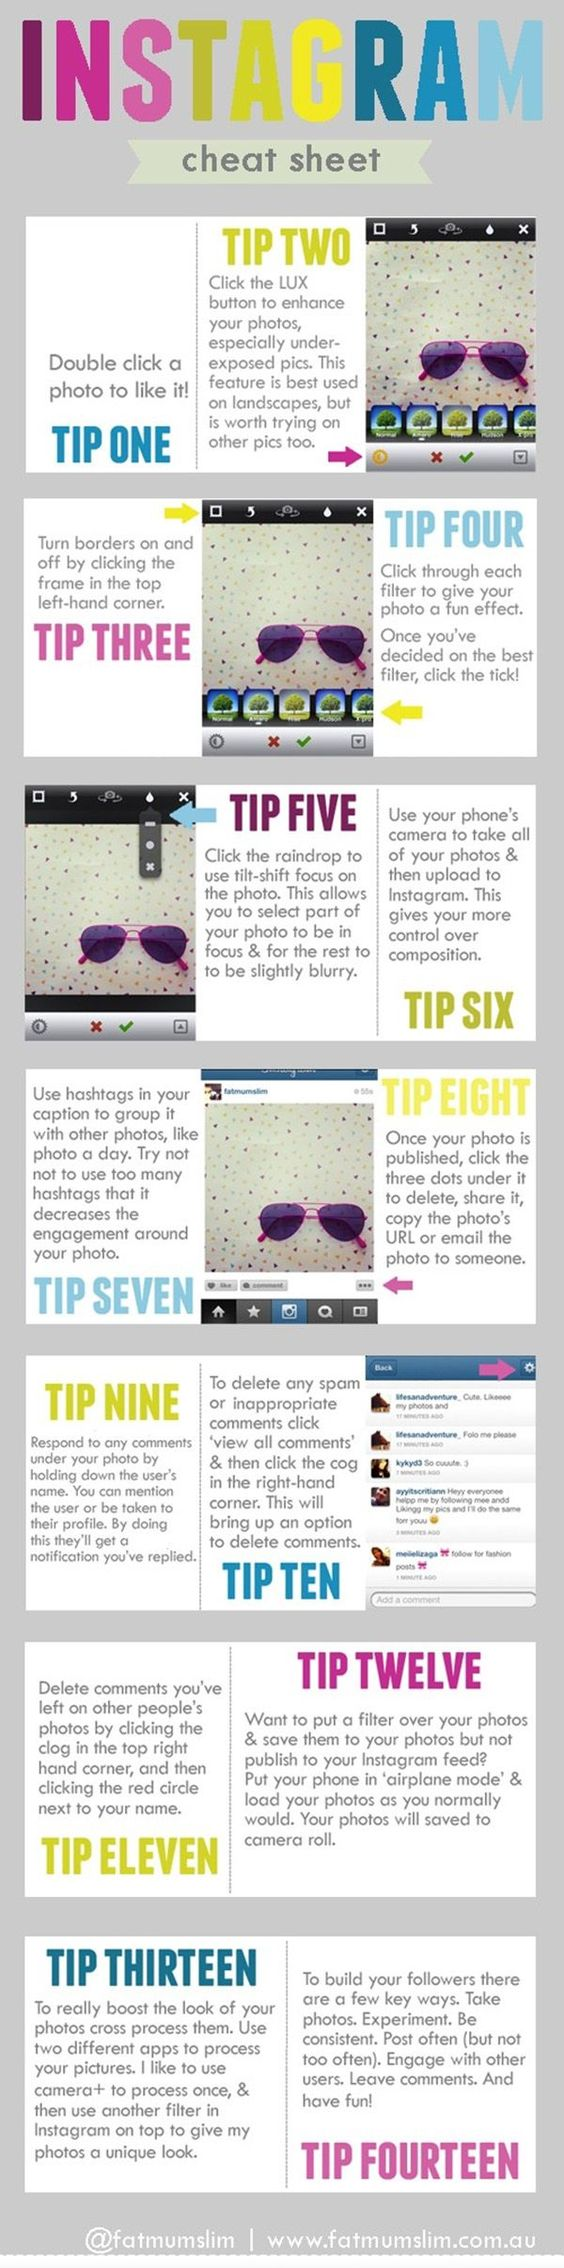 #Instagram Cheat Sheet to Make Your our Social Media Marketing Strategy Work!